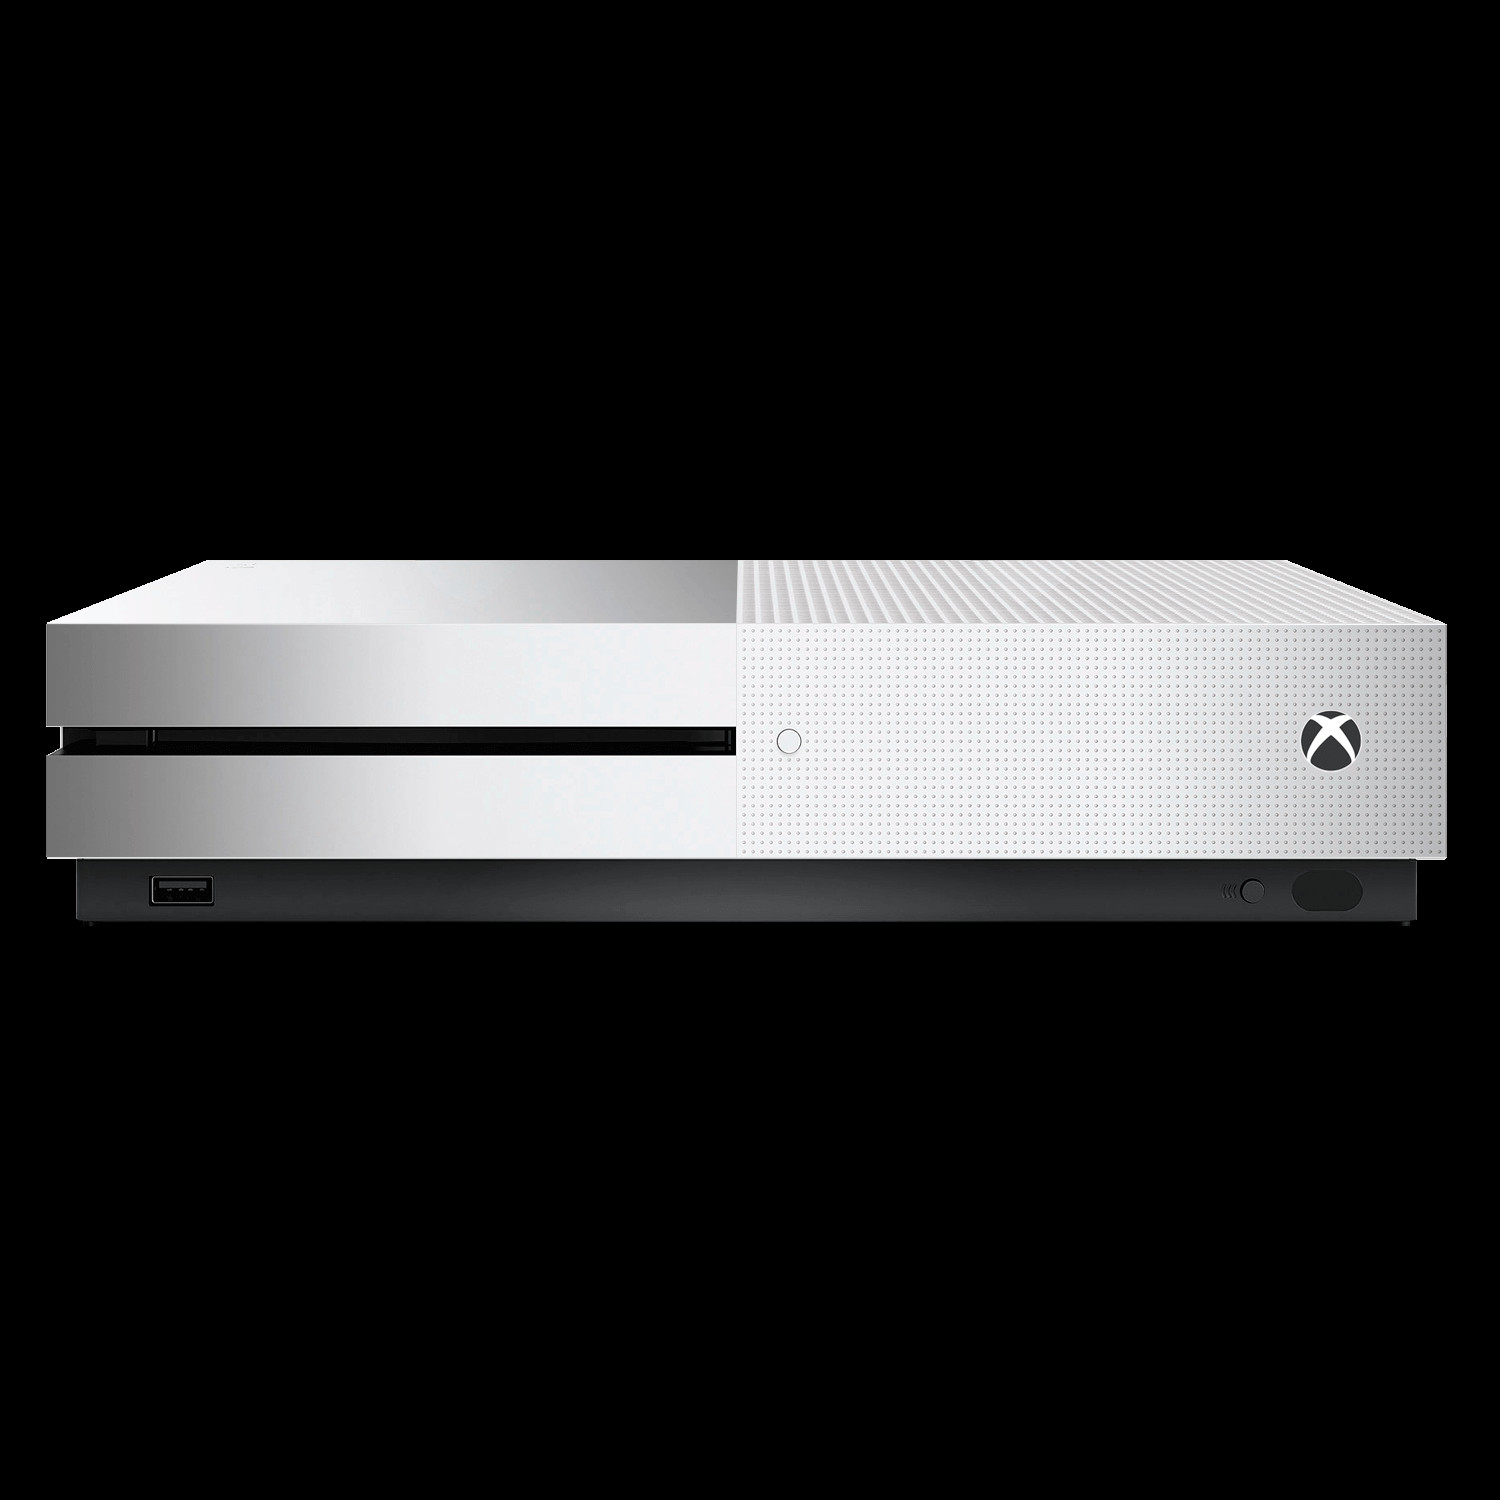 Xbox One Console Skin Template Custom Xbox E S Skins and Wraps